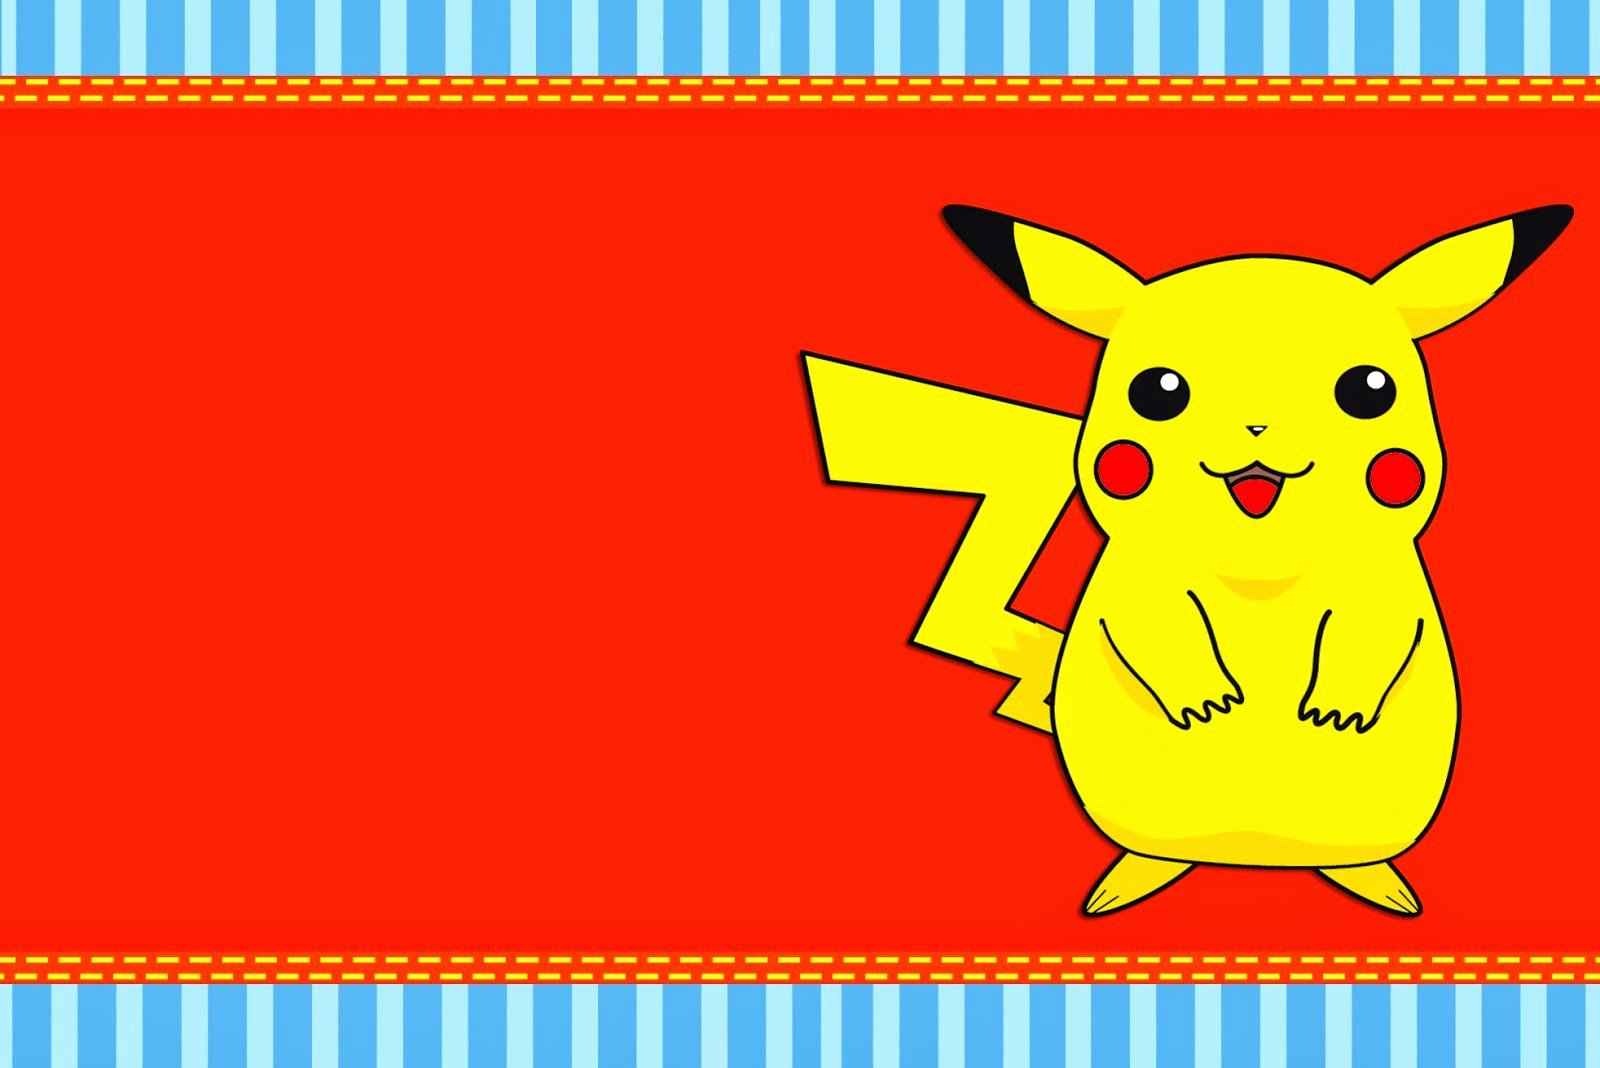 Pokemon Birthday Card Template Best Of Pokemon Free Printable Invitations Oh My Fiesta for Geeks